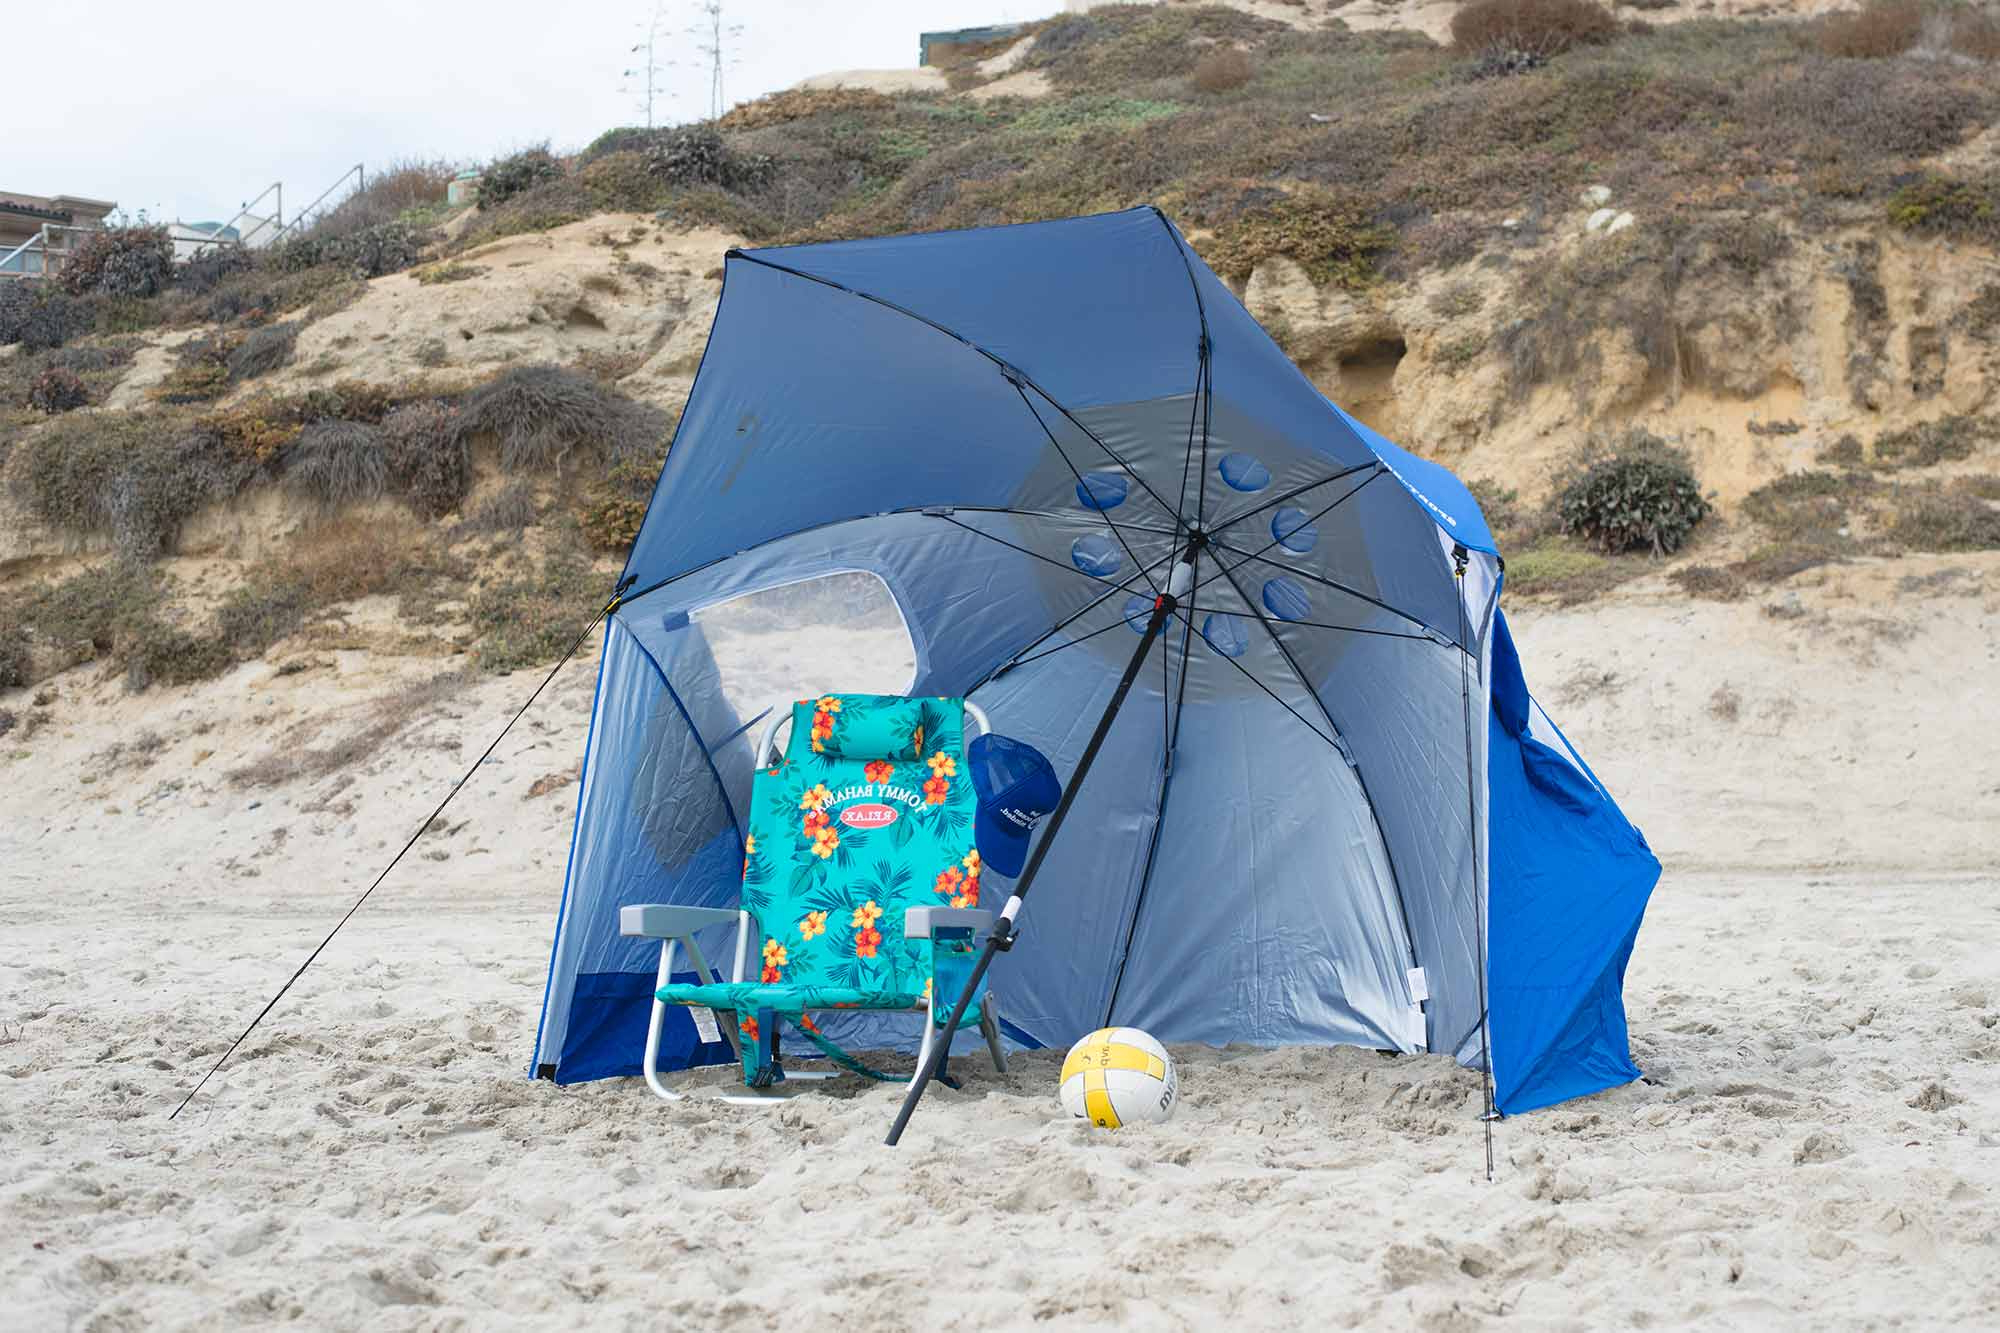 Latest The Best Beach Umbrellas, Chairs & Tents Of 2019 – Your Best Digs Within Sun Shelter Beach Umbrellas (View 4 of 20)